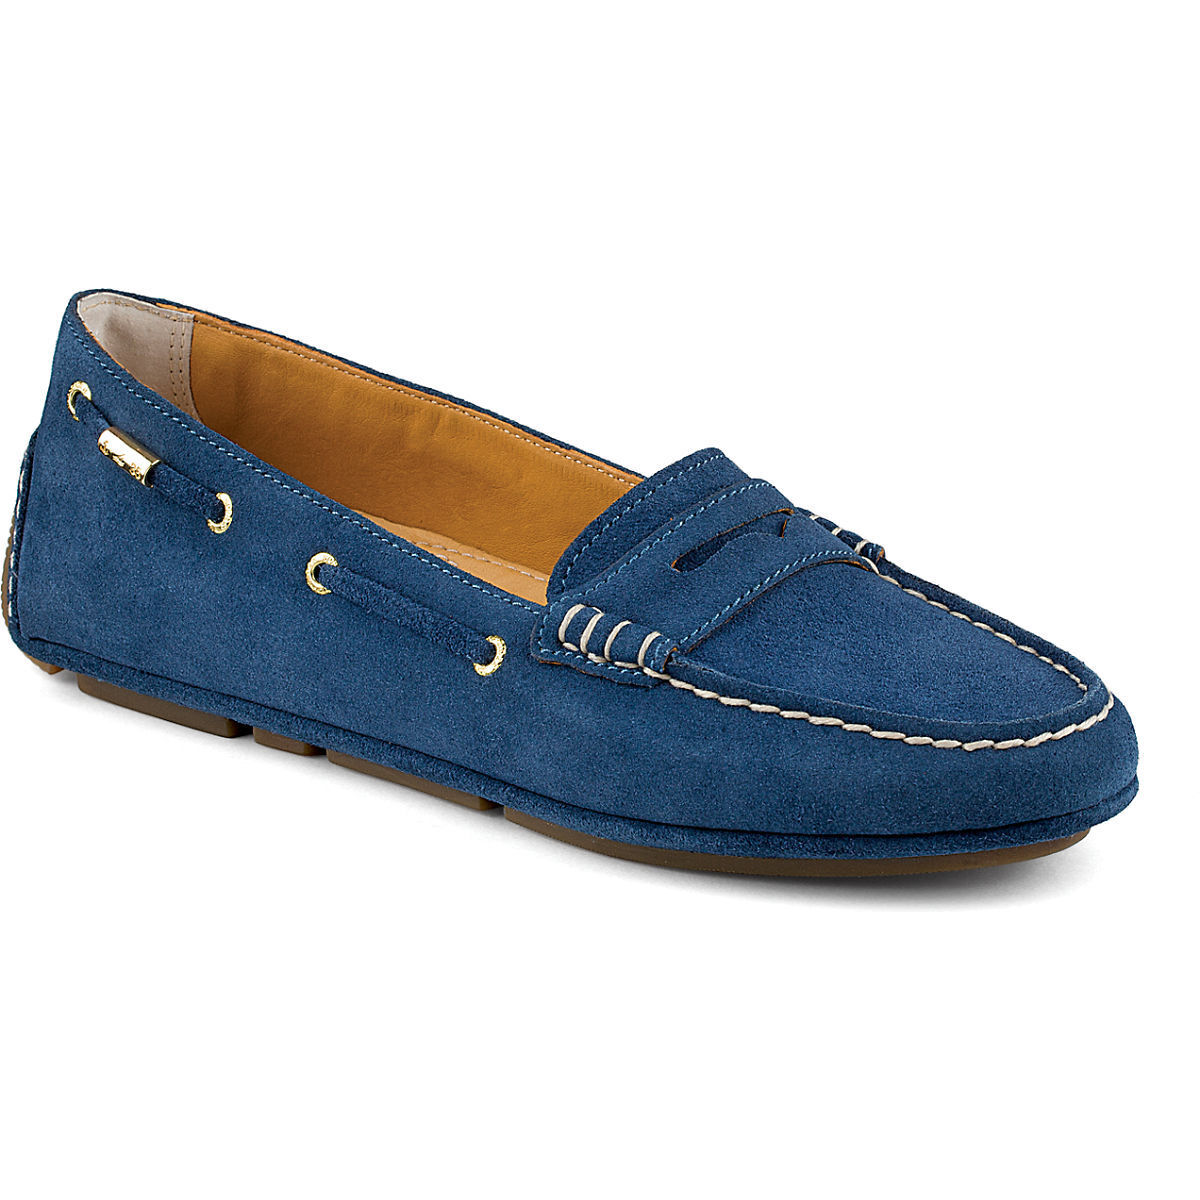 Women's Sperry Top-Sider Gold Cup Penny Driver Blue Suede, STS91202 Size 6